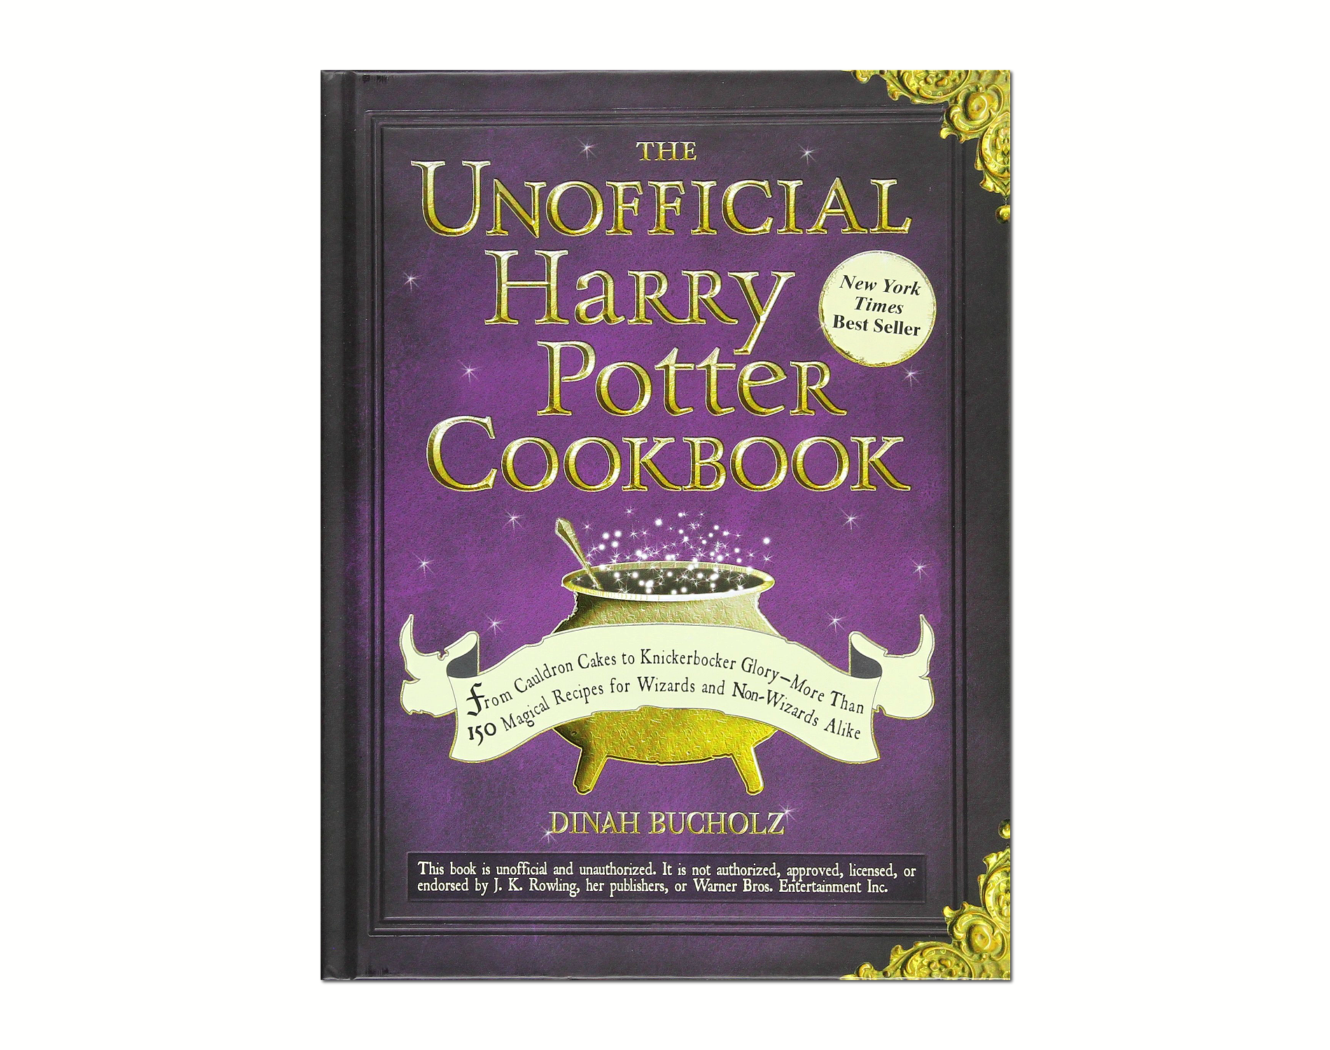 Image of The Unofficial Harry Potter Cookbook: From Cauldron Cakes to Knickerbocker Glory